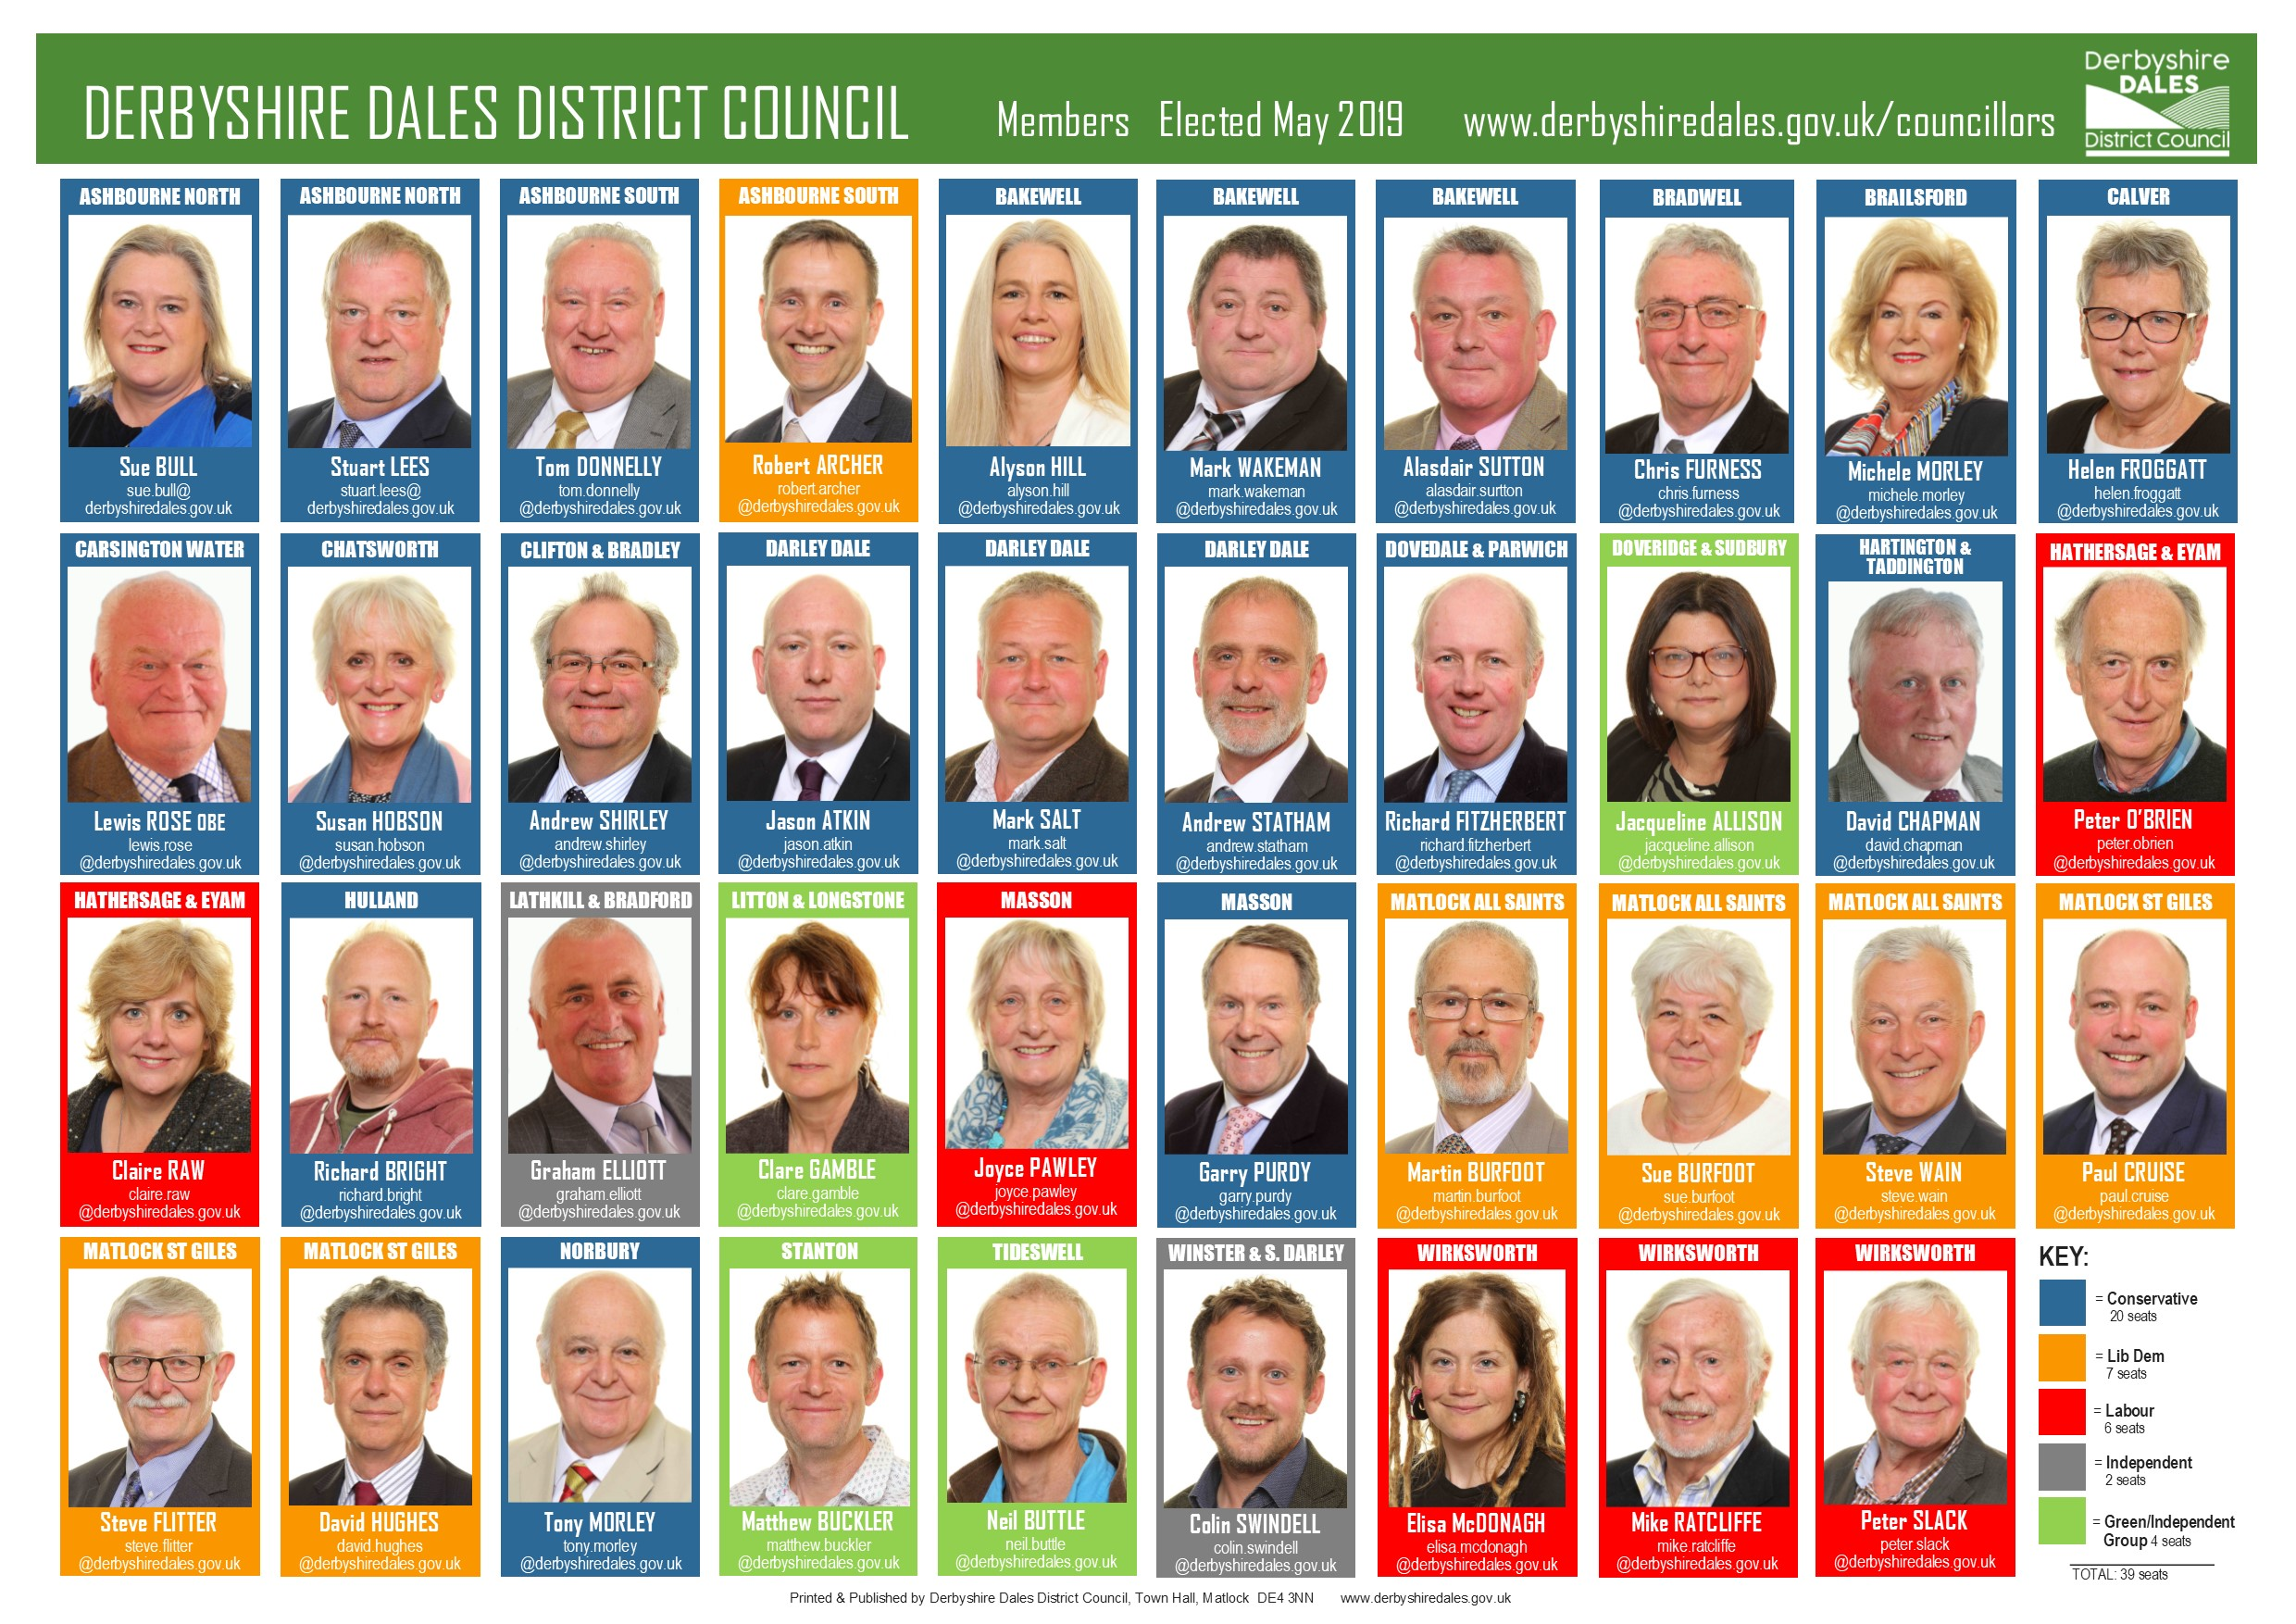 Councillors elected 2019 revised 2